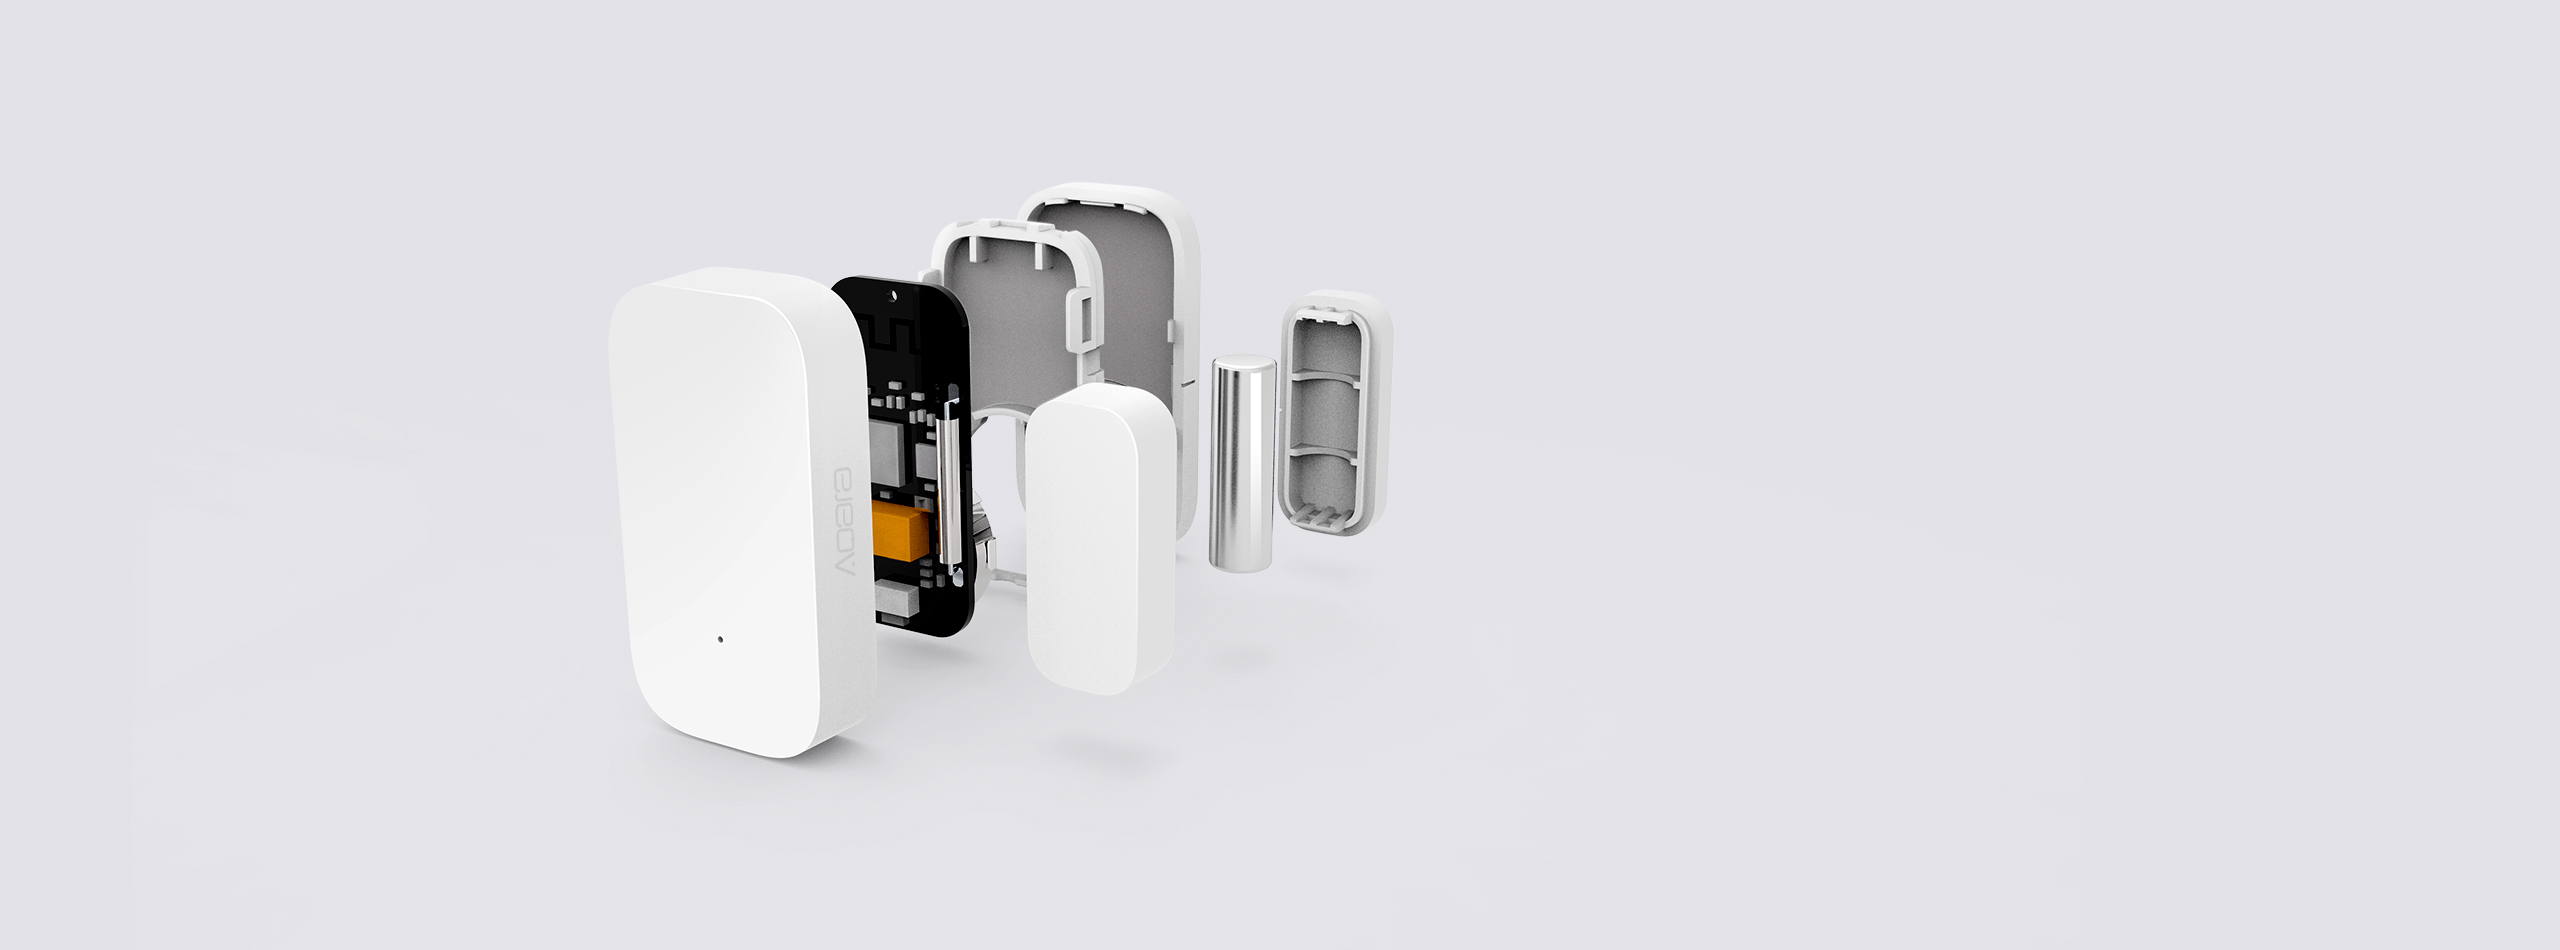 Aqara wireless door alarm details